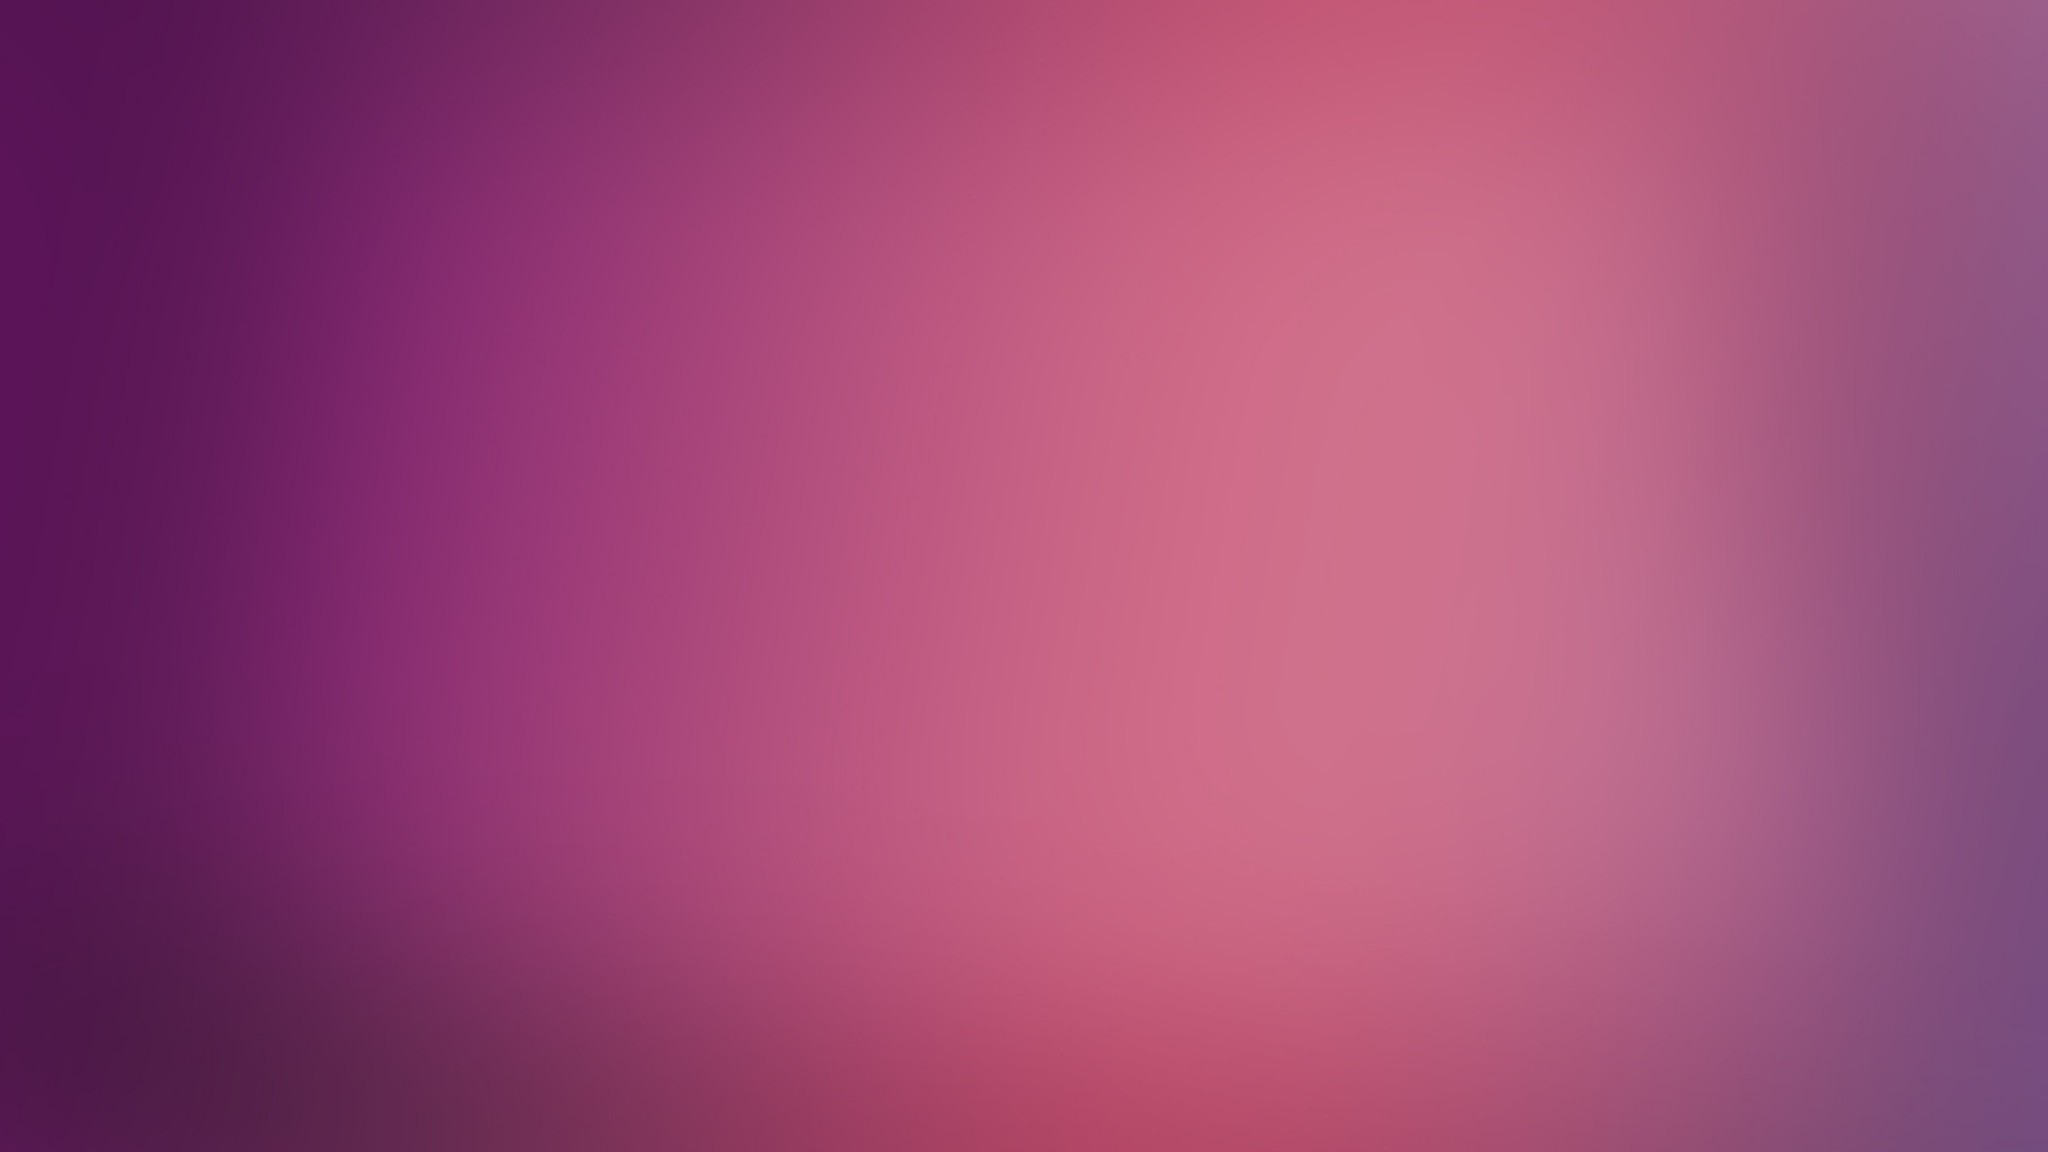 Plain Color Wallpaper